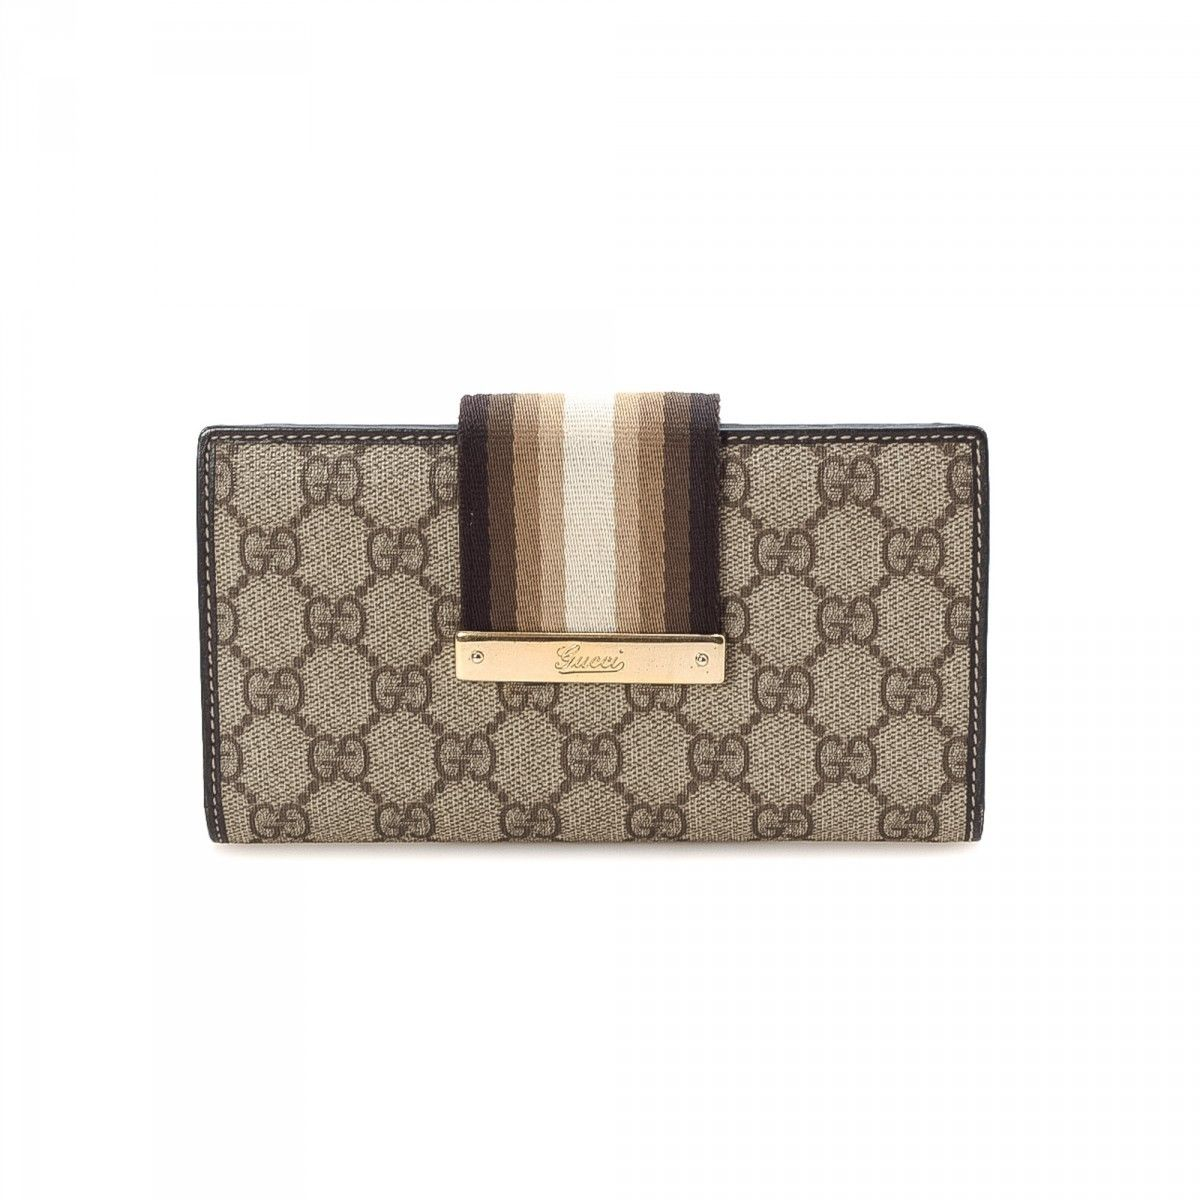 bb409498d6b Gucci Long Wallet GG Supreme Coated Canvas - LXRandCo - Pre-Owned ...